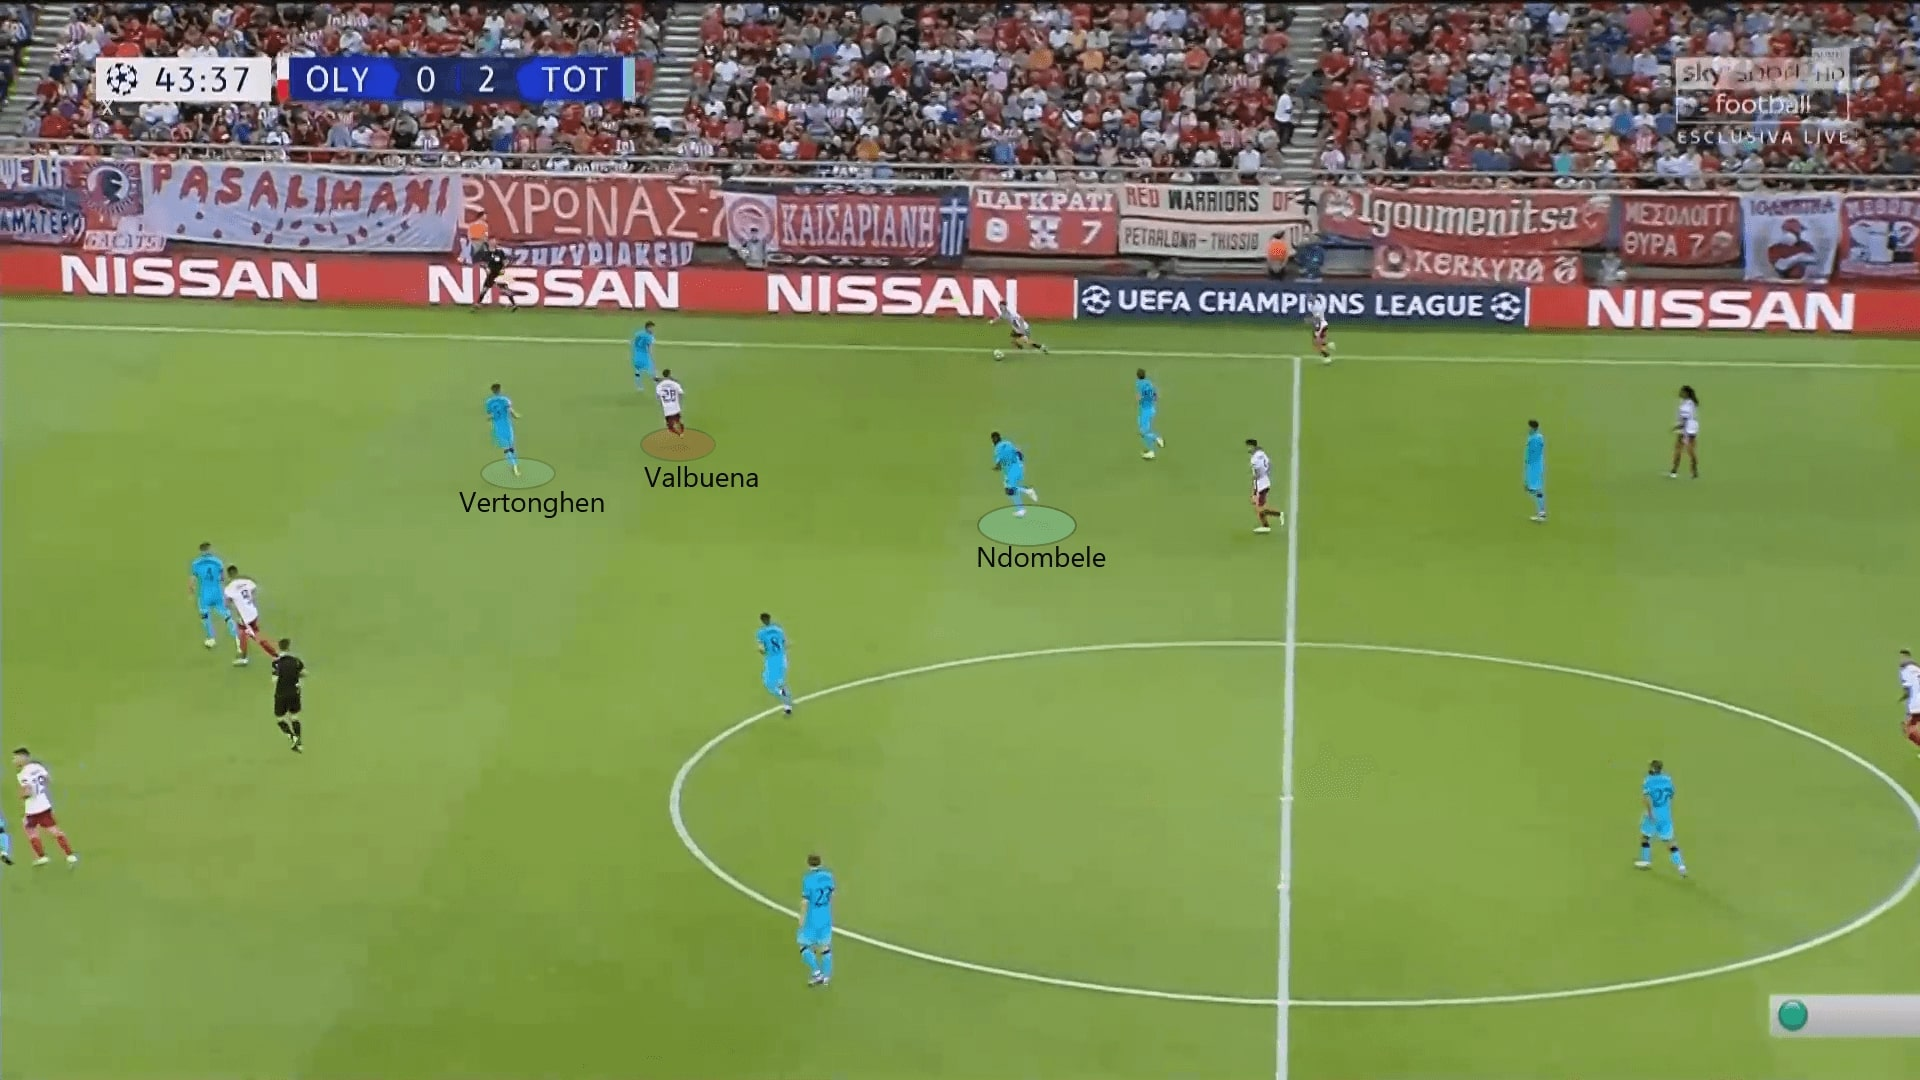 UEFA Champions League 2019/20: Olympiacos vs Tottenham Hotspur - tactical analysis tactics